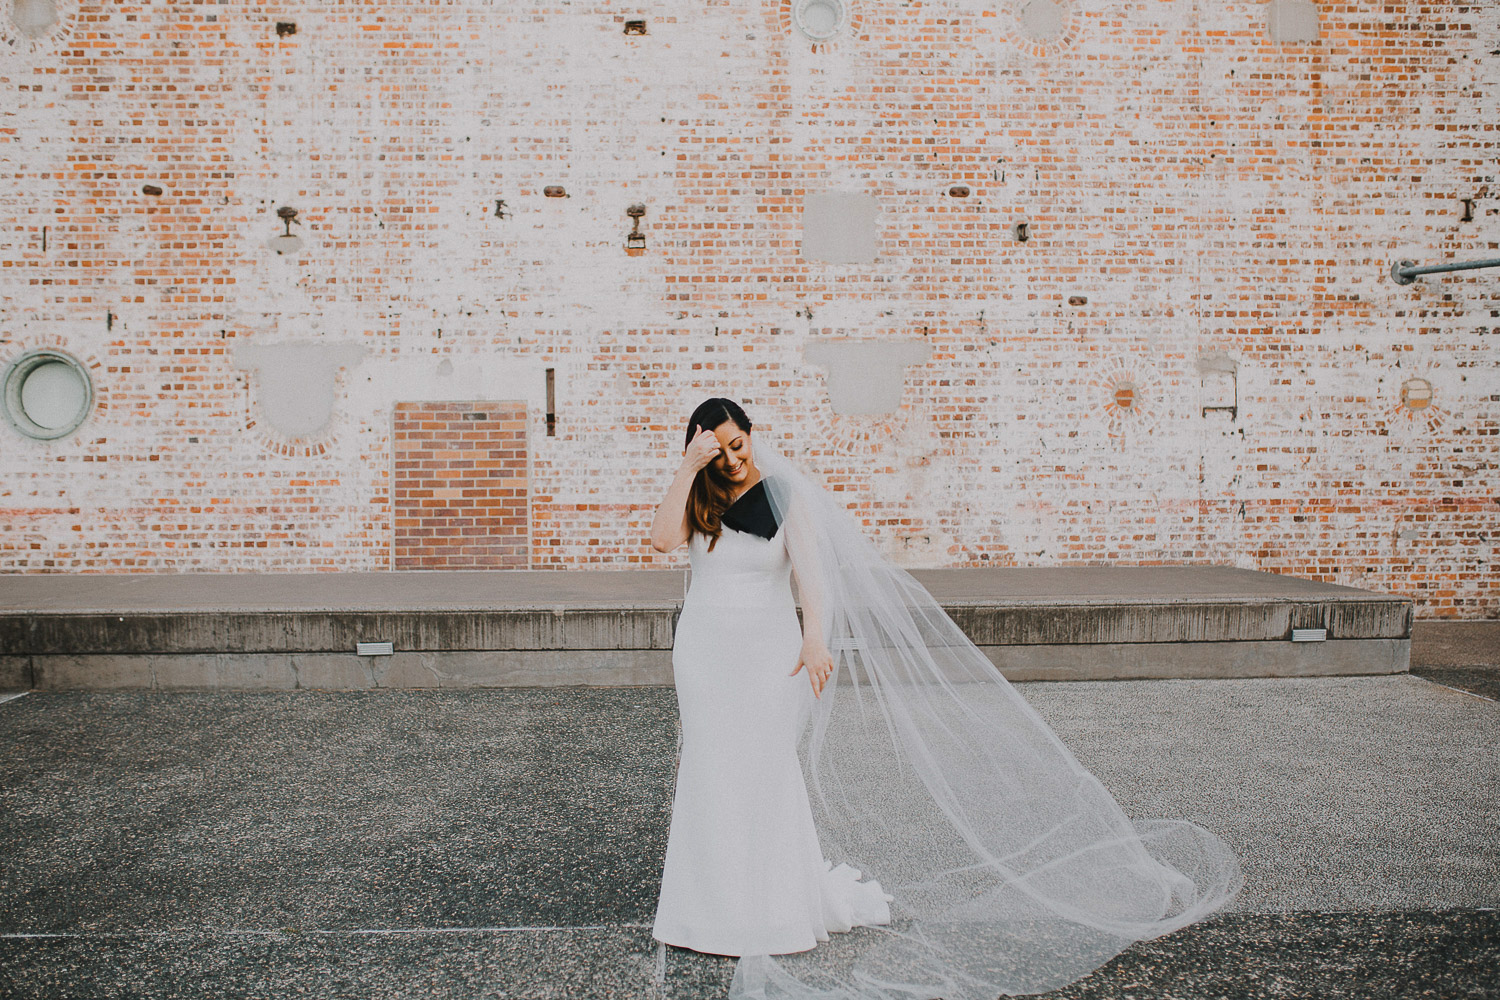 Wedding photos at the power station in Brisbane